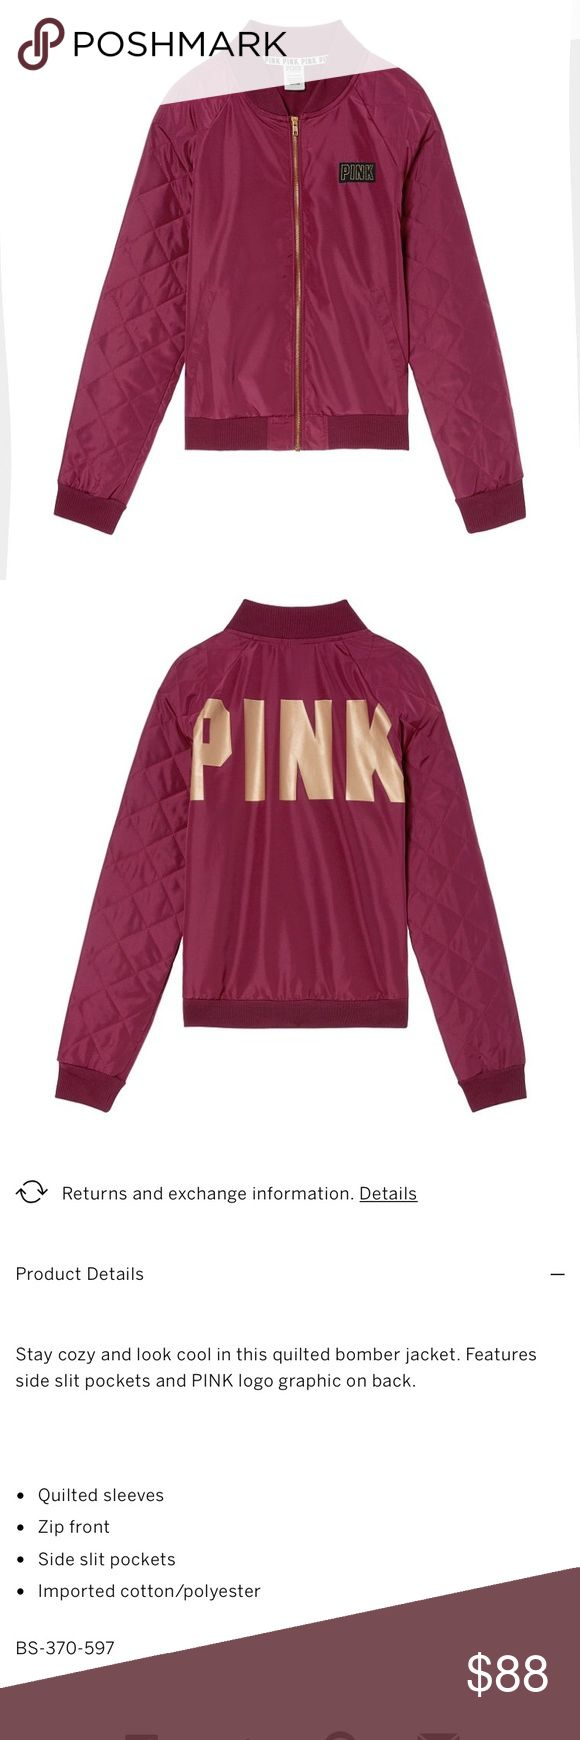 🌟BRAND NEW🌟 PINK LOGO MED BOMBER JACKET Brand New  🛍PRICE IS FINAL🛍 Authentic  No Tags Inside Online Packaging  Fees Included in price  Look at pictures please If you need additional pictures let me know 🚫NO TRADES🚫 🚫No Shipping on the Weekends🚫 Serious Buyers Only  THANK YOU PINK Jackets & Coats